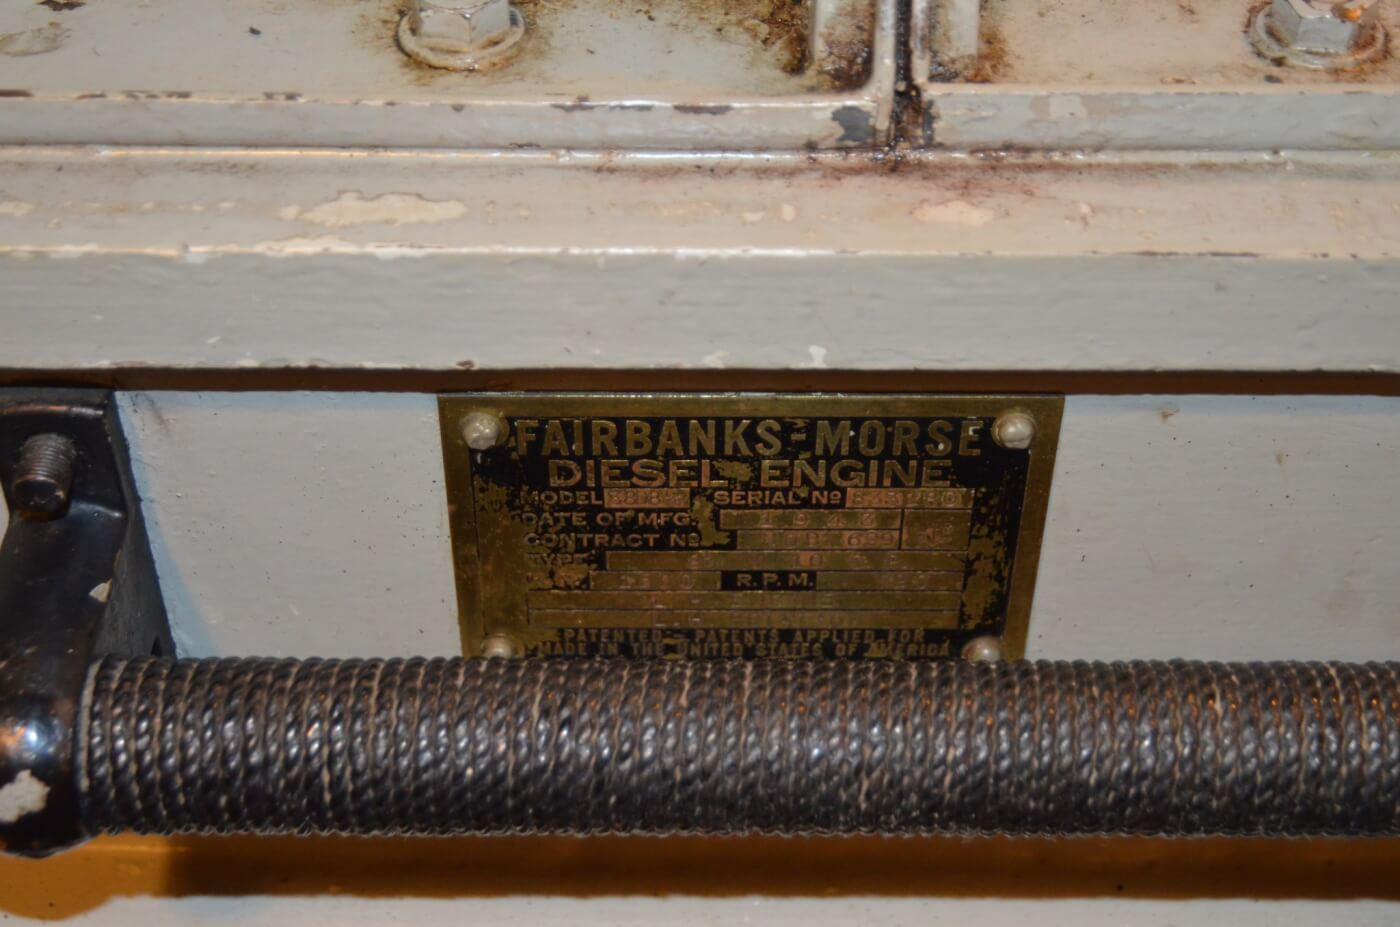 Fairbanks Morse engine data plate.